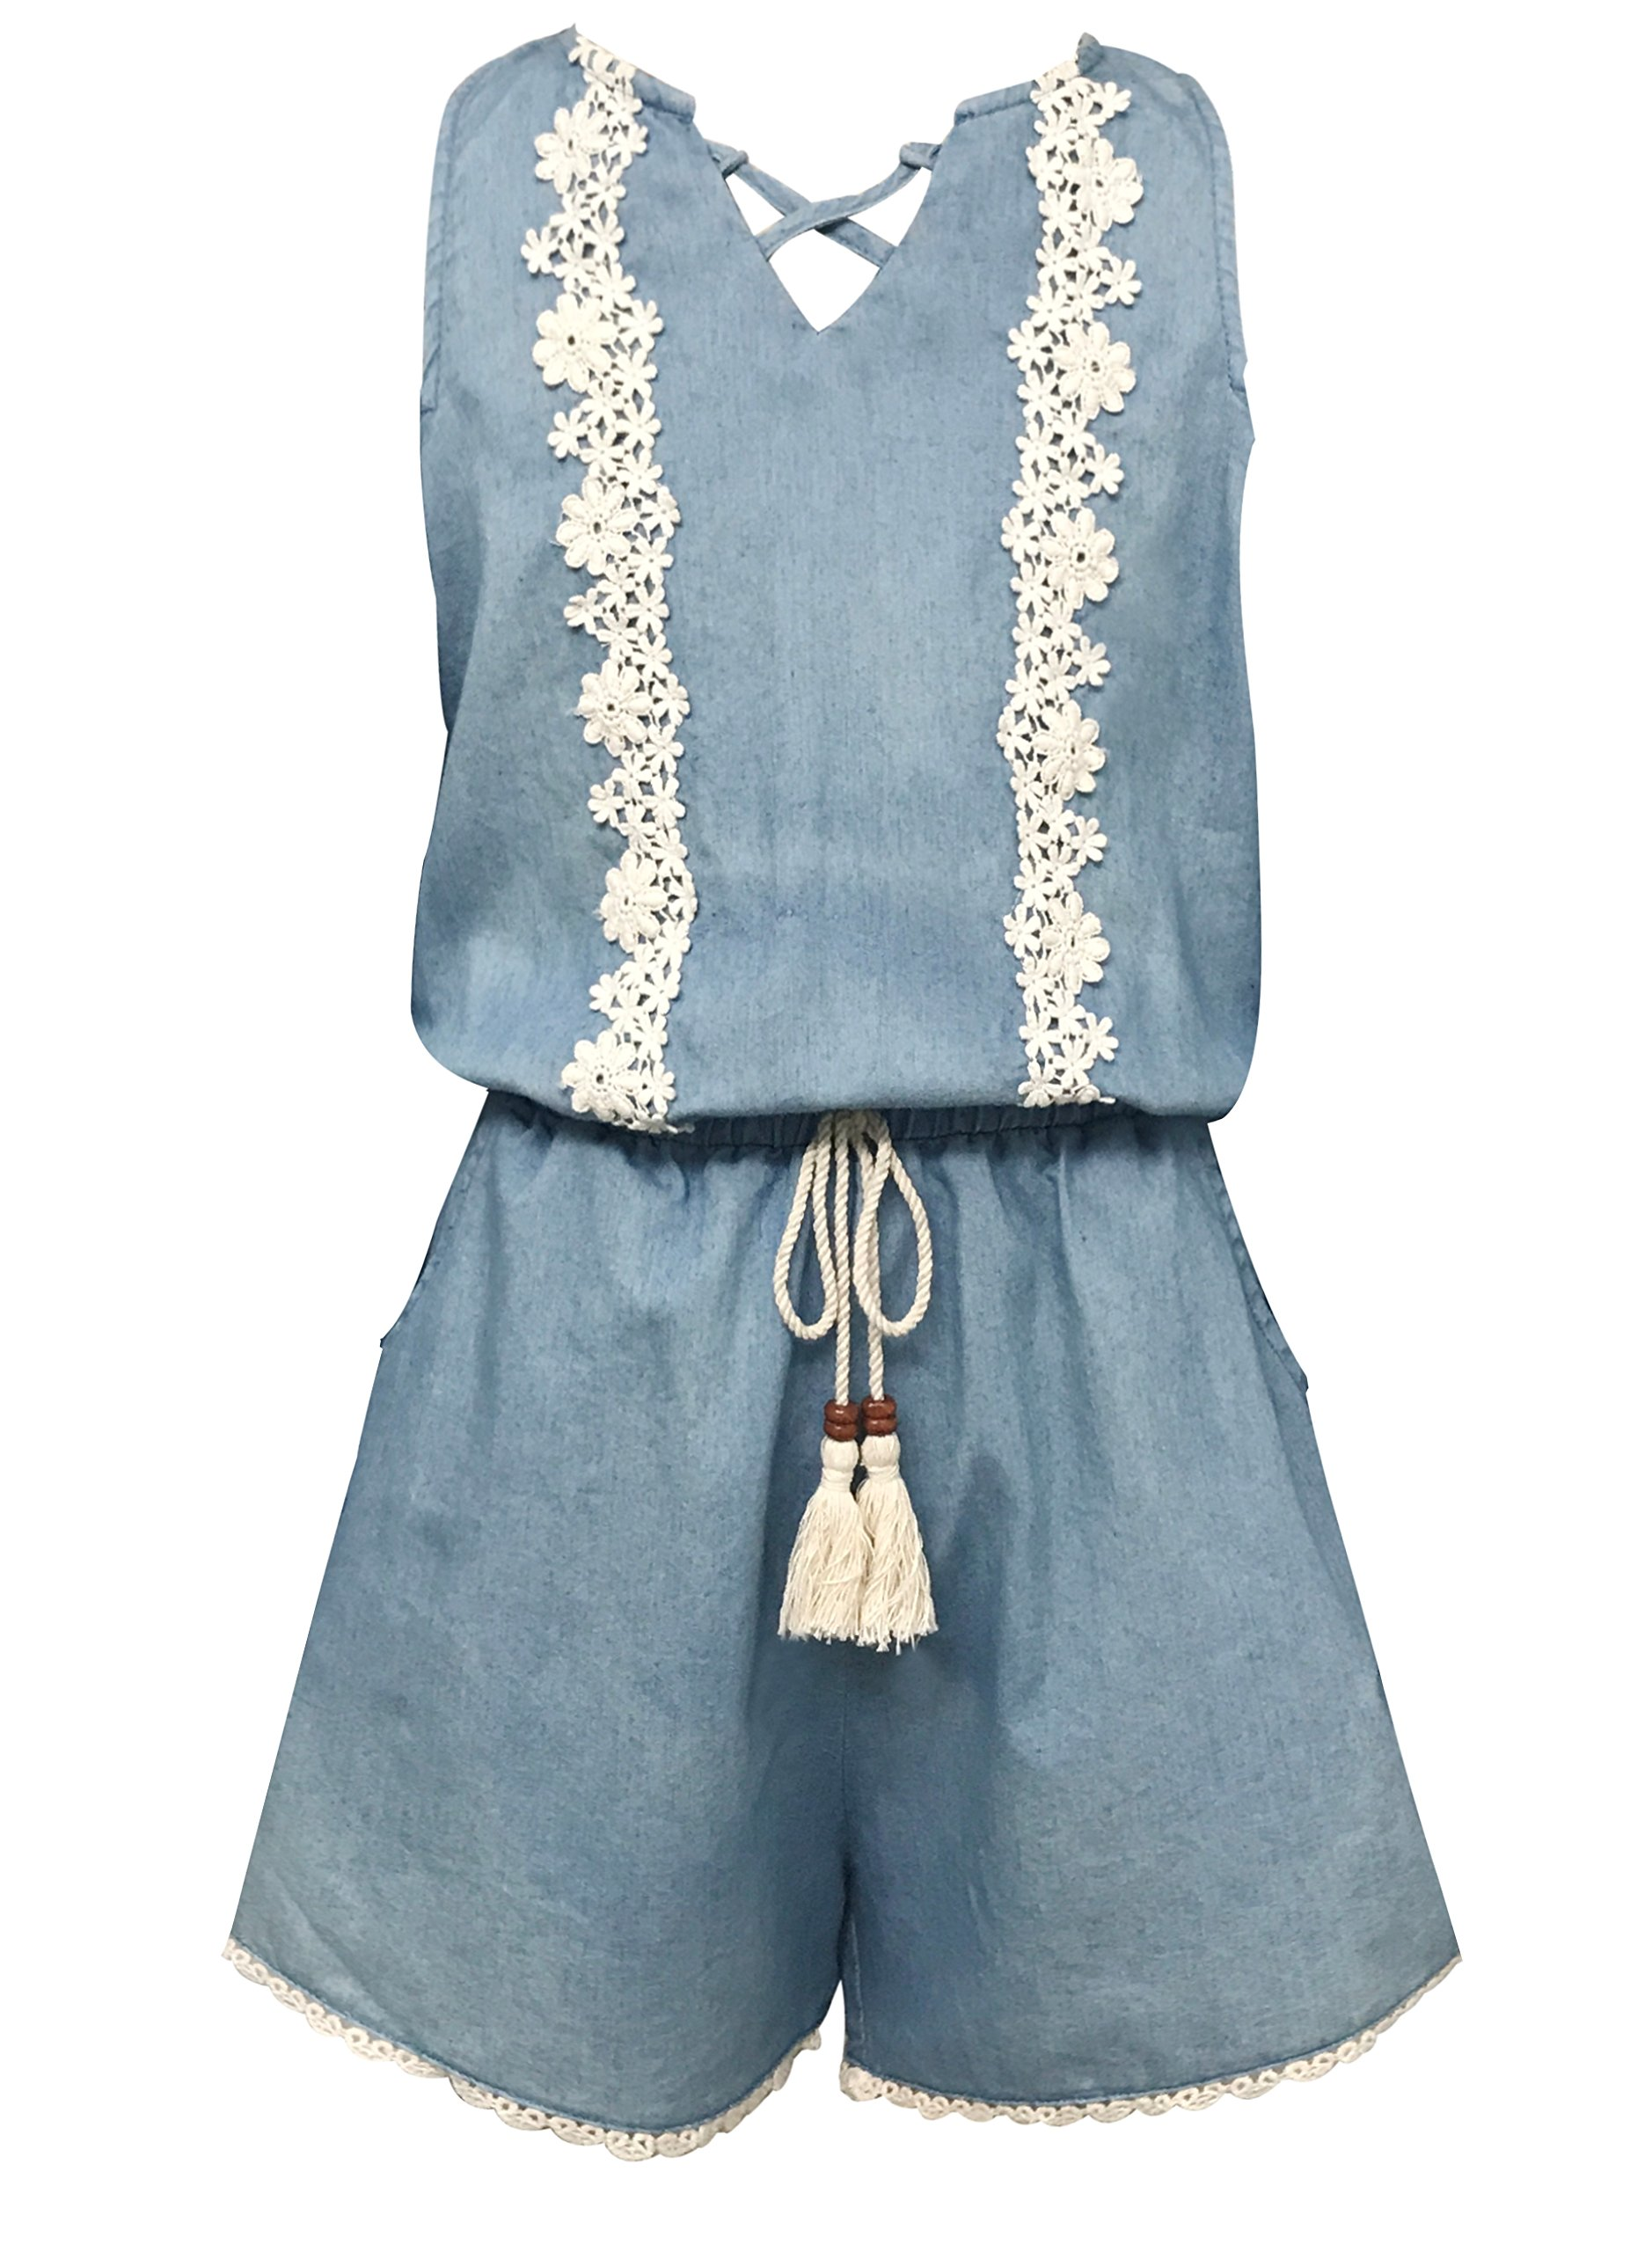 Smukke, Big Girls Vintage Lace Trimmed Denim Sleeveless Romper with Pockets, 7-16 (Denim, 10)